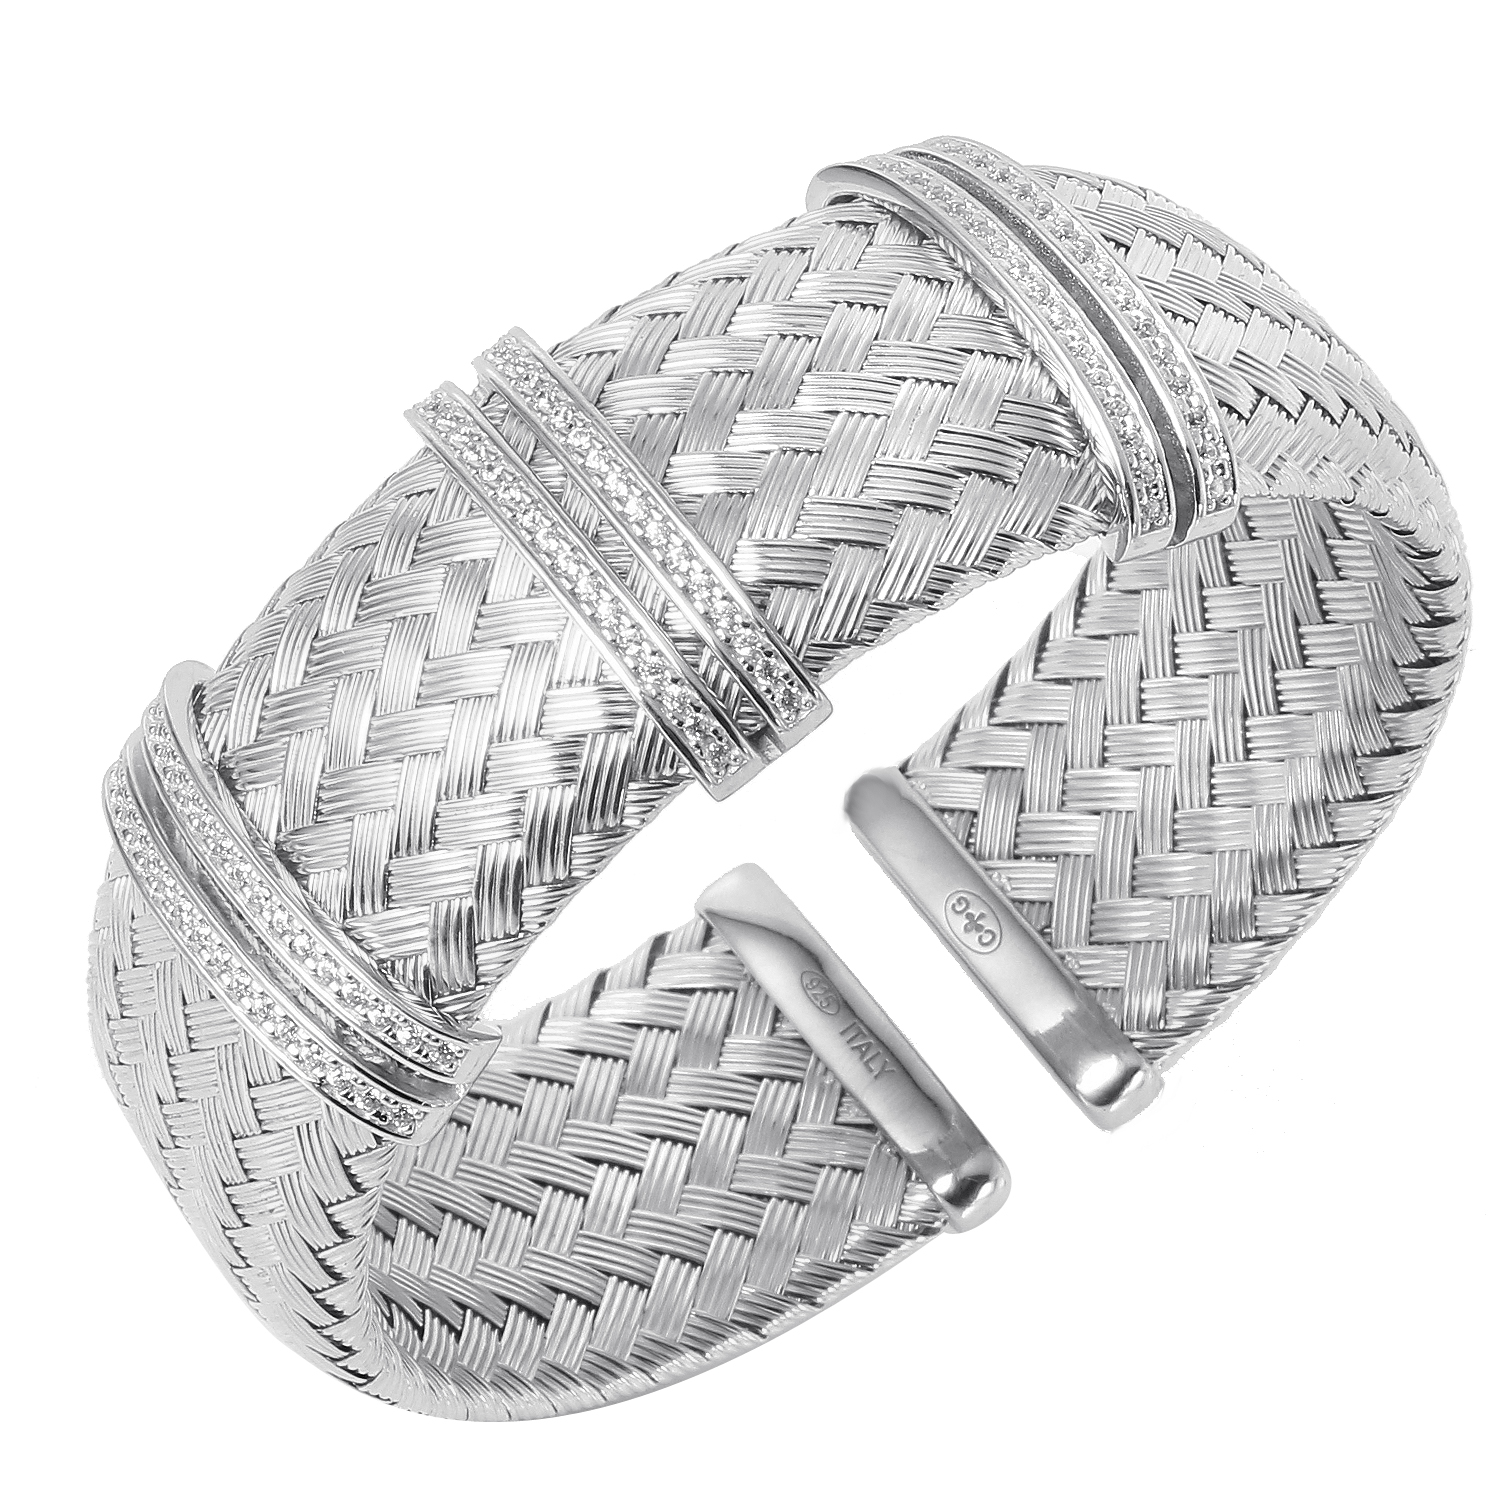 CHARLES GARNIER - Sterling Silver and CZ Cuff Bar Bangle